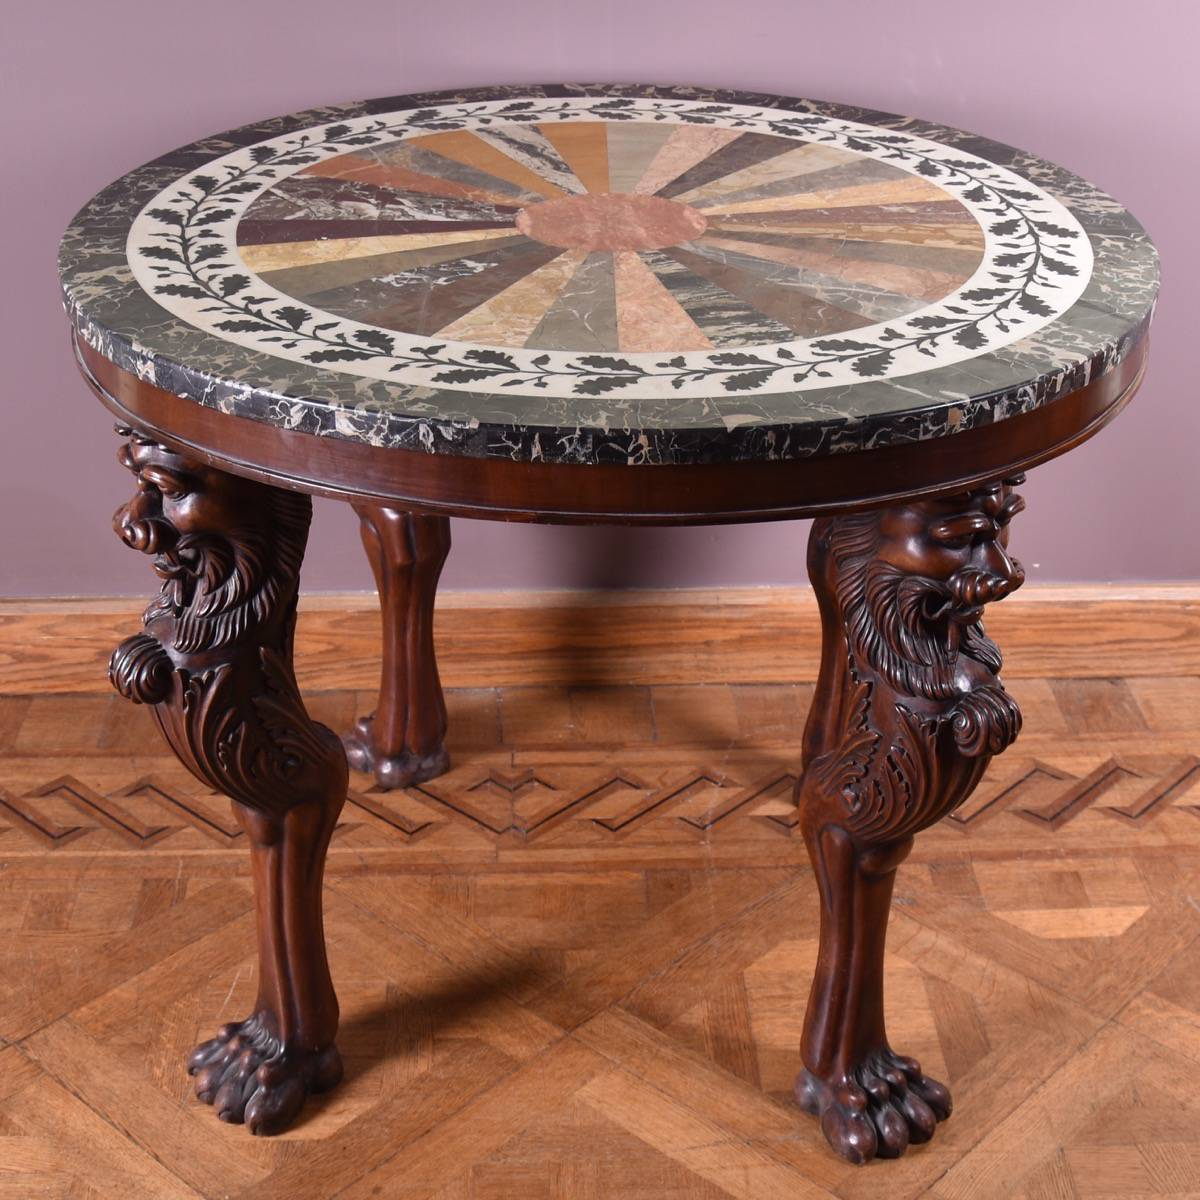 Antique Inlaid Marble Table : Antique mahogany inlaid marble gueridon